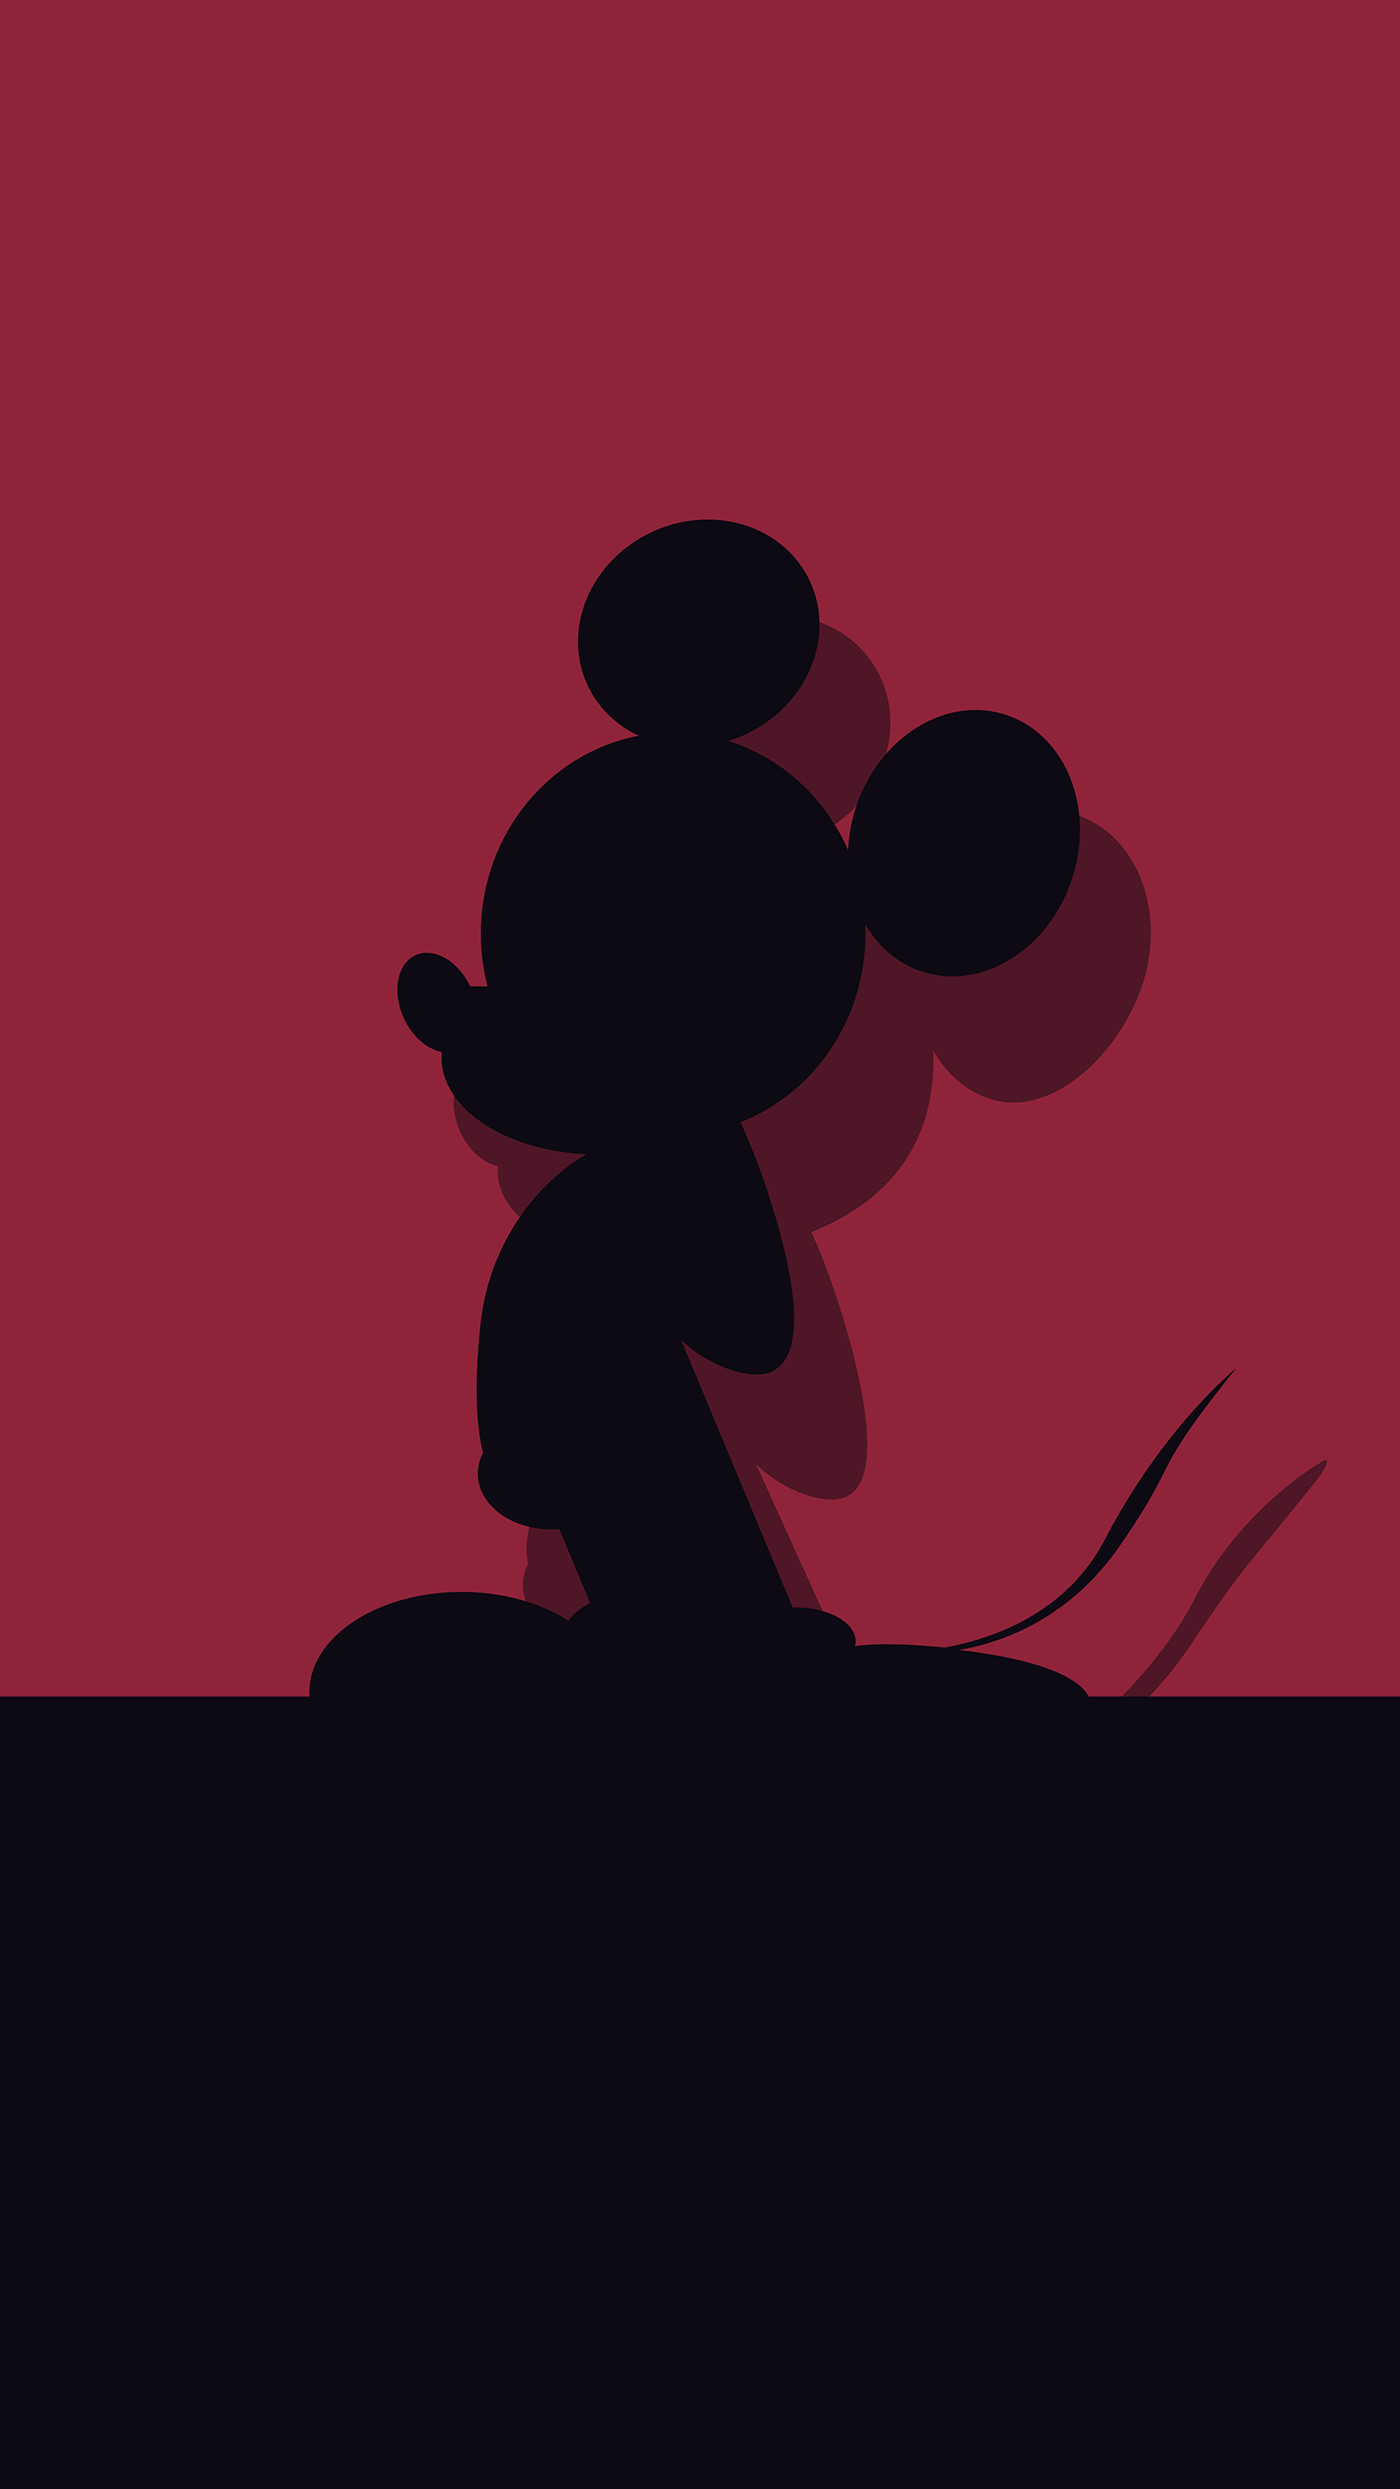 Wallpaper Mickey Posted By Ryan Tremblay